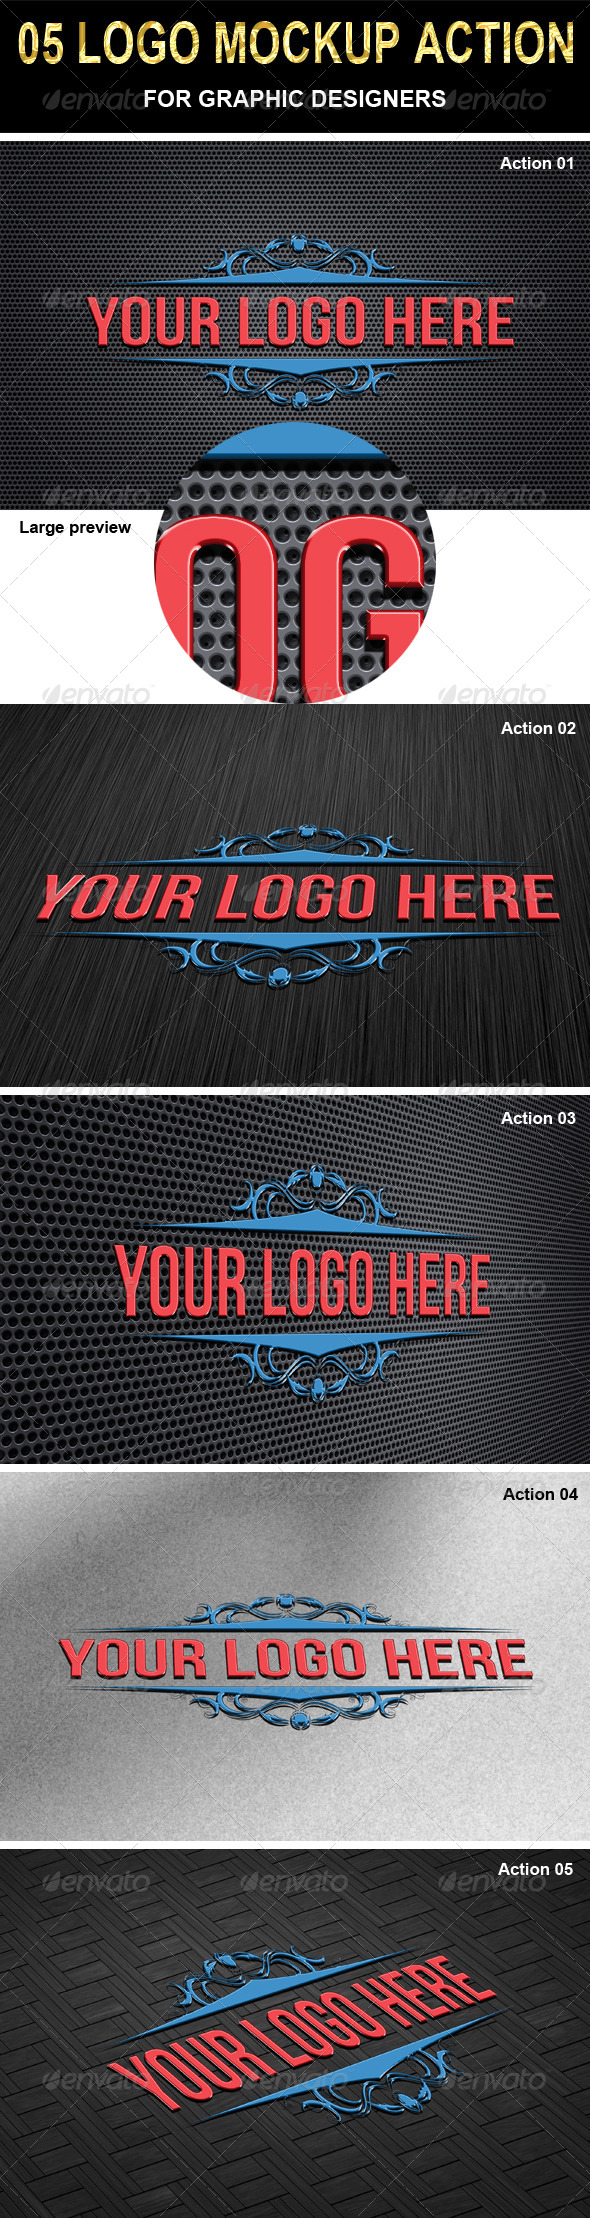 GraphicRiver 05 Logo Mockup Actions Bundle 6729718